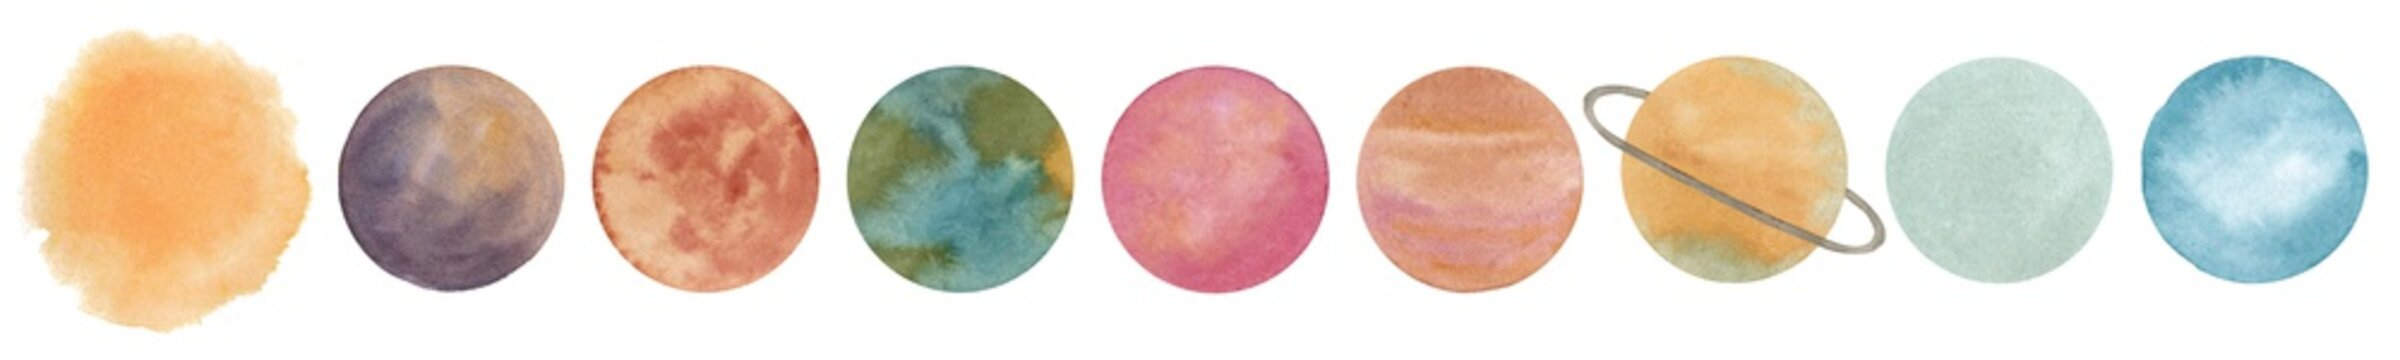 Solar system planets set. Space banner with sun, mercury, venus, earth, mars, jupiter, saturn, uranus, neptune. Watercolor hand drawn  abstract elements isolated on white background.